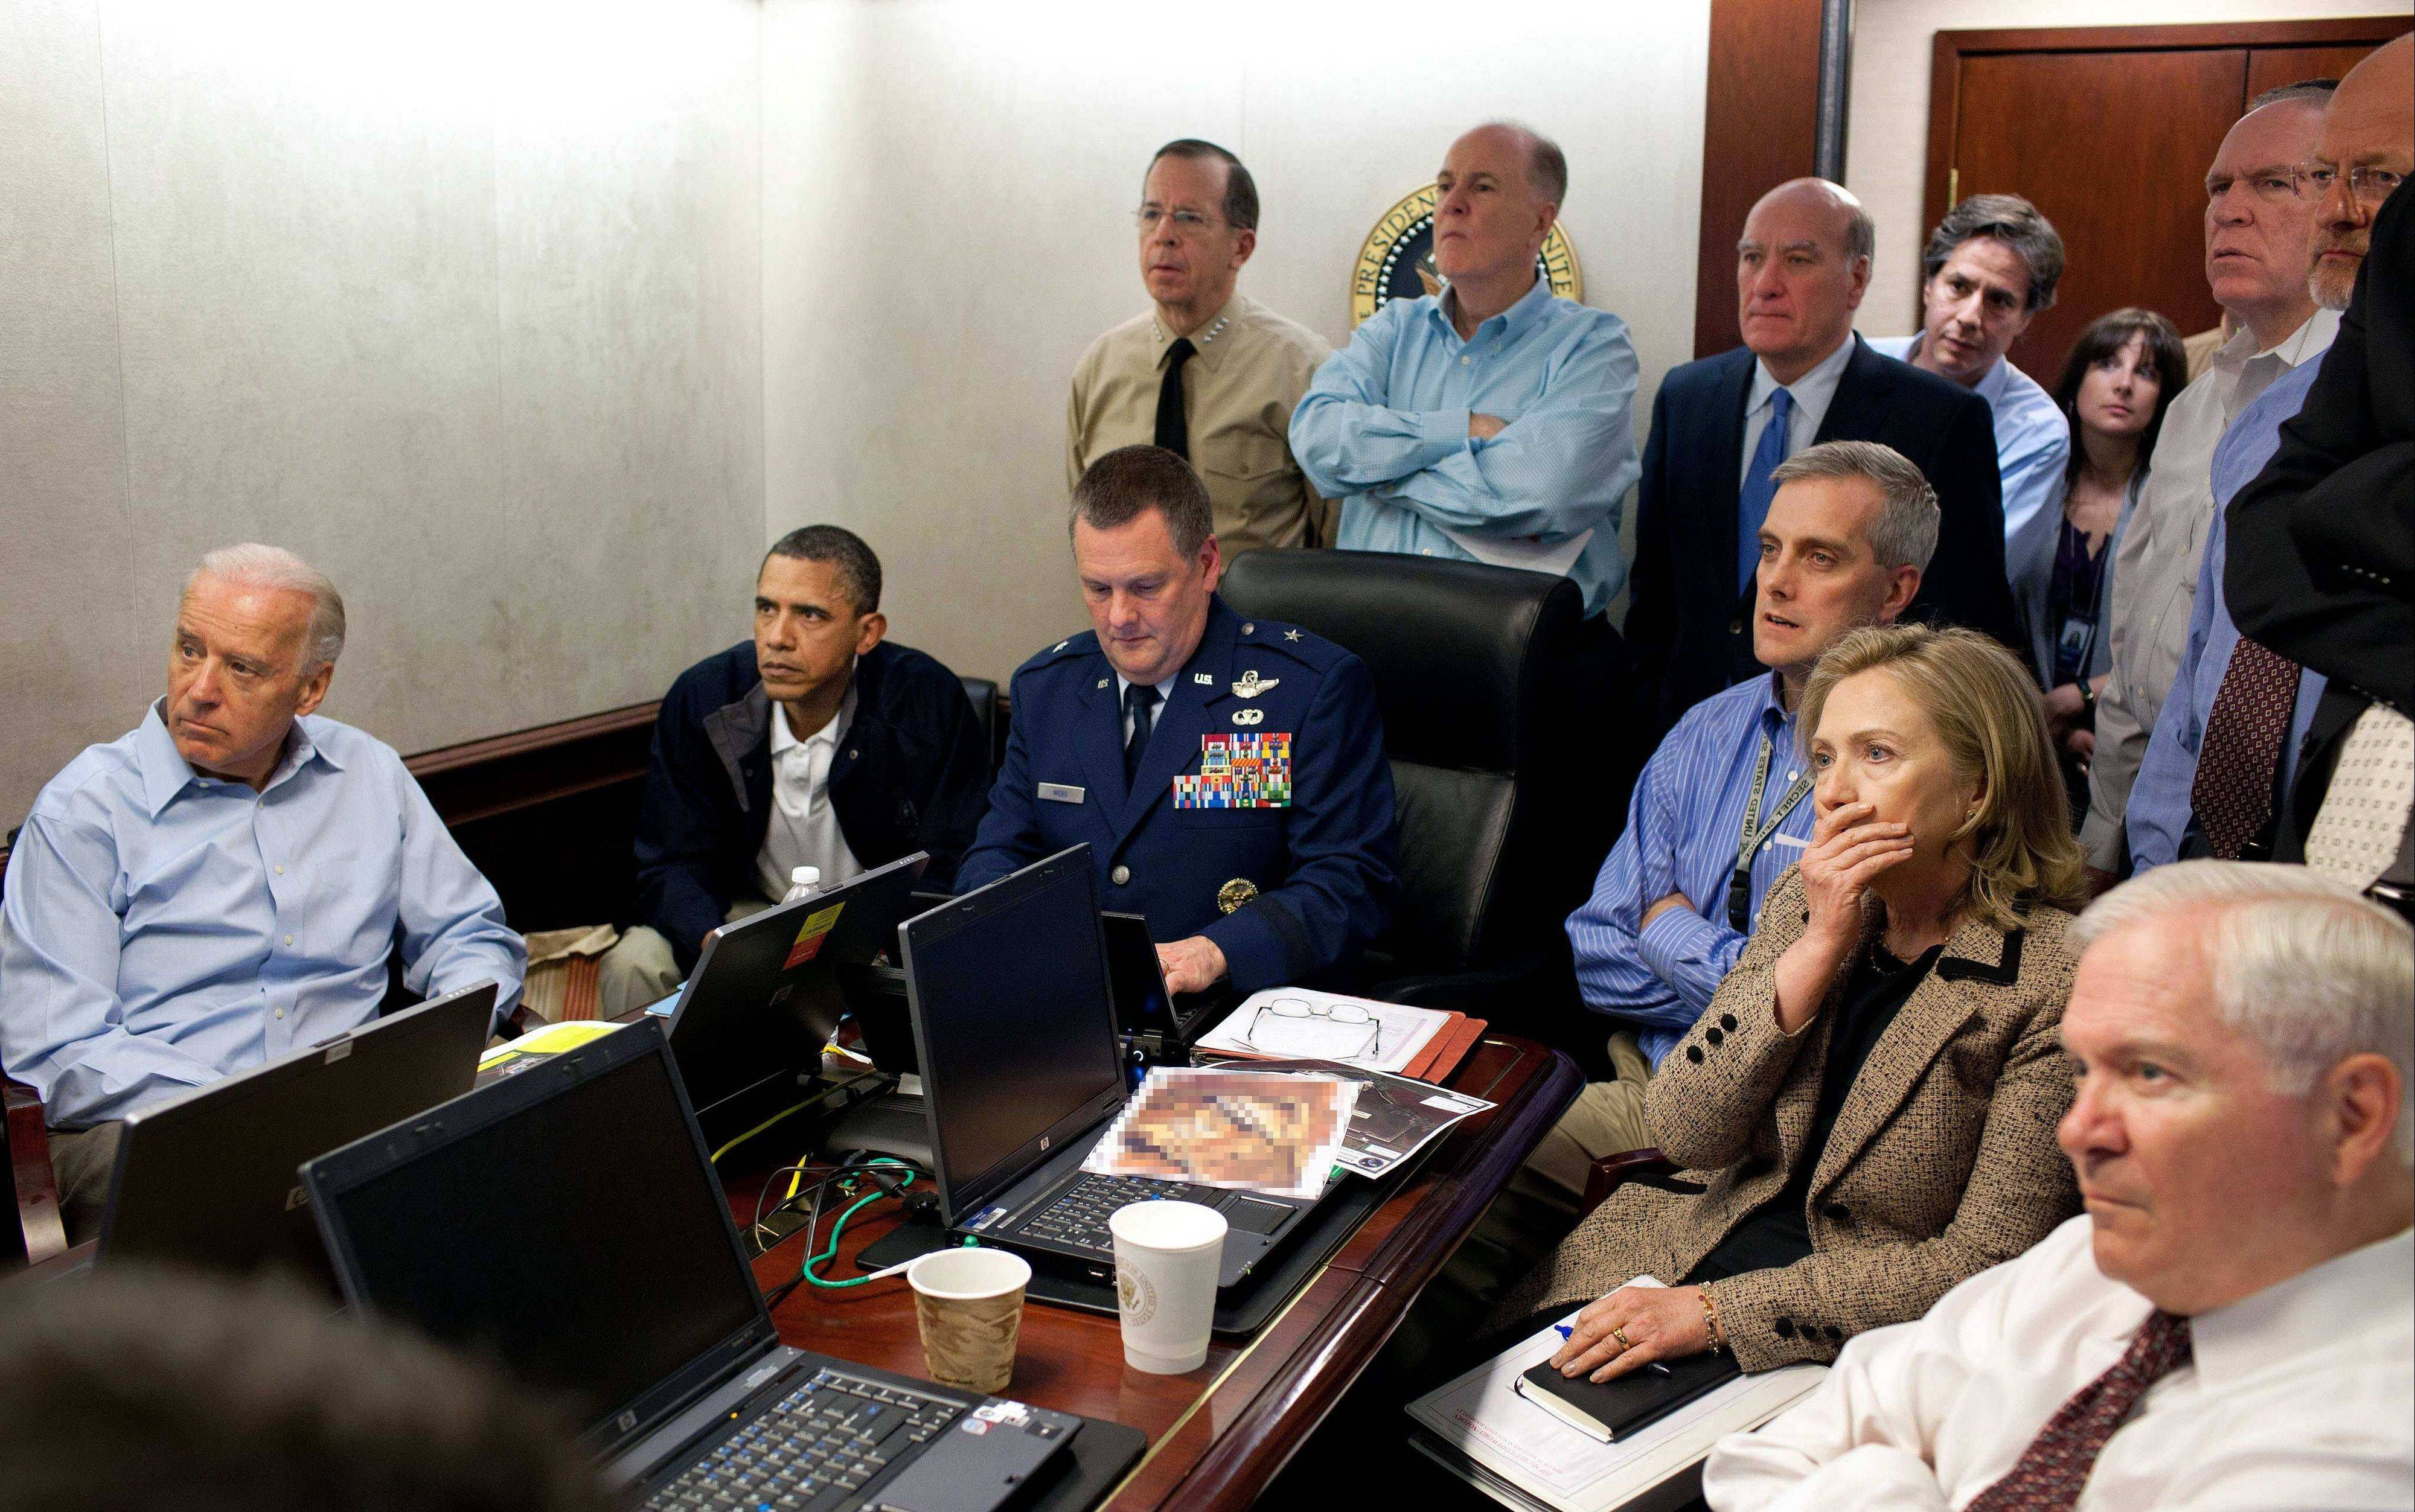 This May 1, 2011, image was digitally altered and released by the White House.